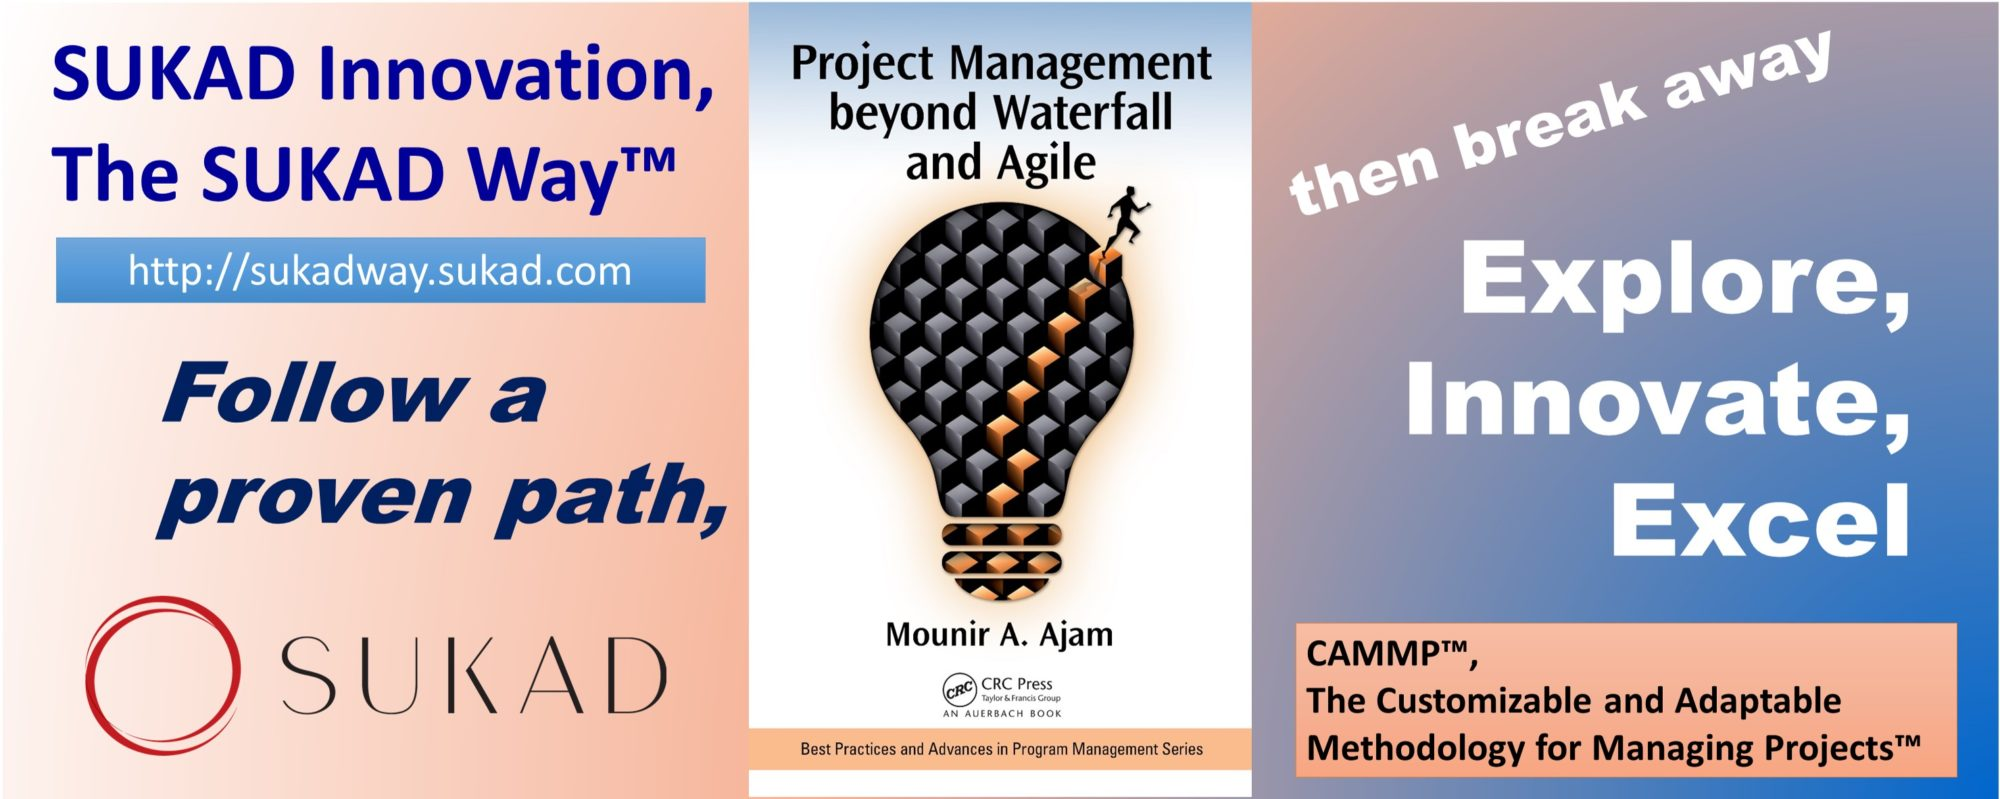 project and innovation management Instill innovation culture in project management practices world-wide.